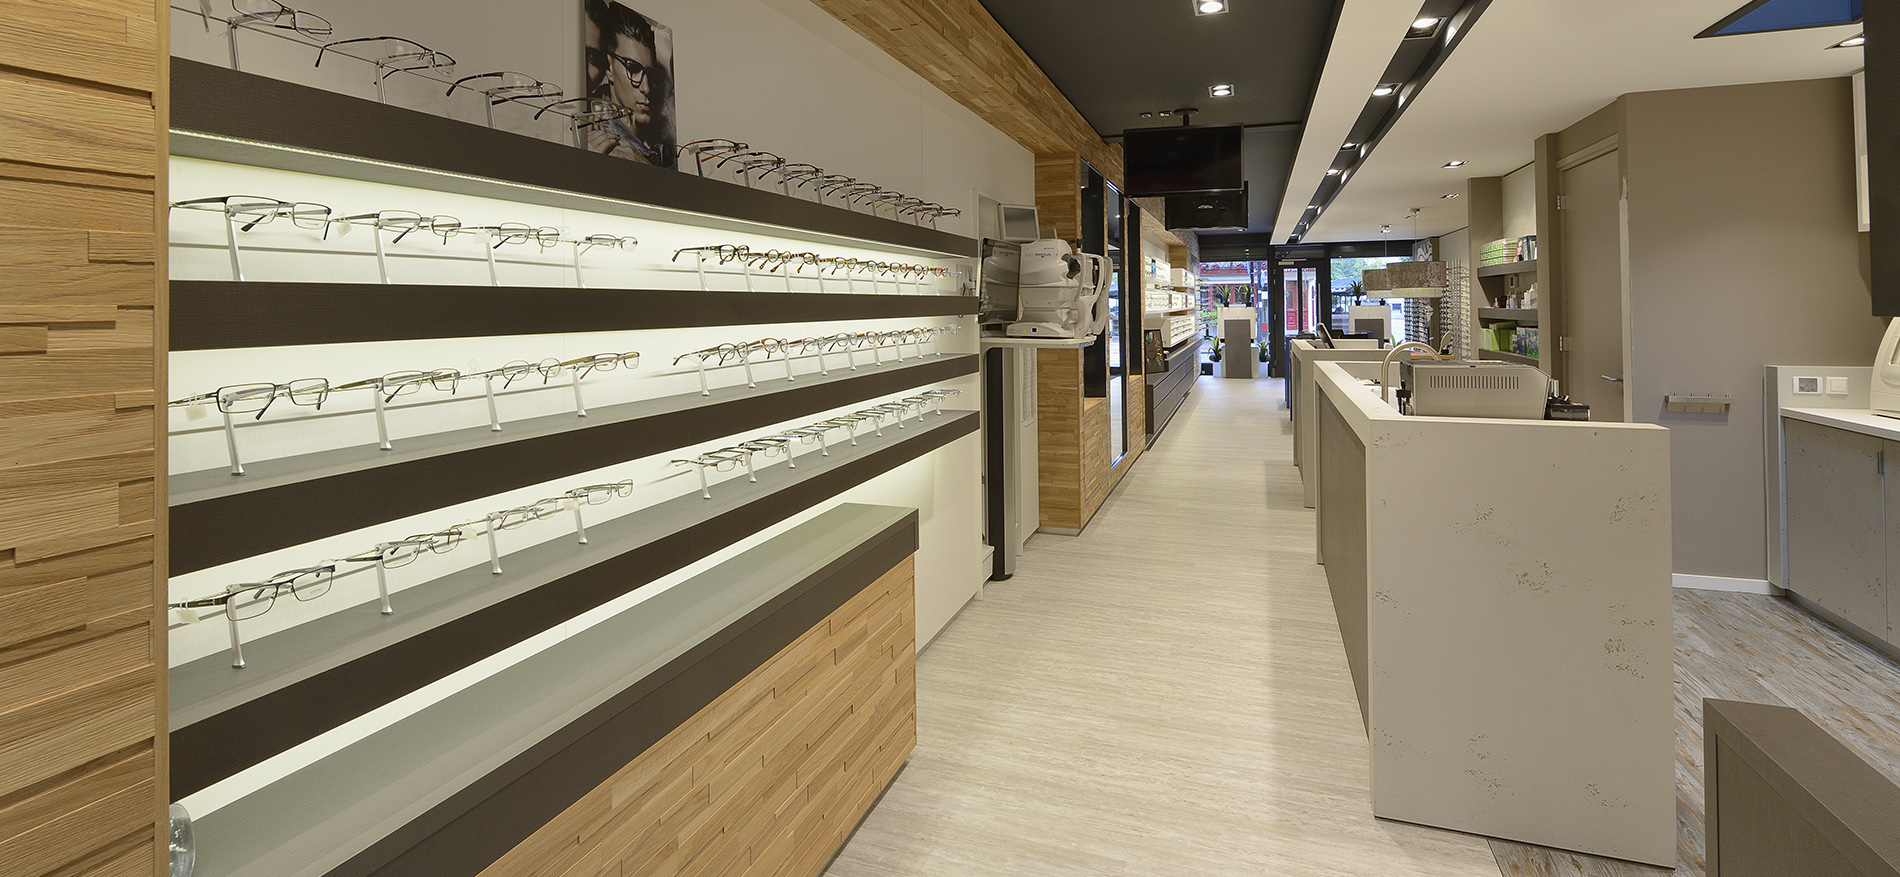 Optique zeist l 39 architecture d 39 int rieur d 39 optique for L architecture d interieur